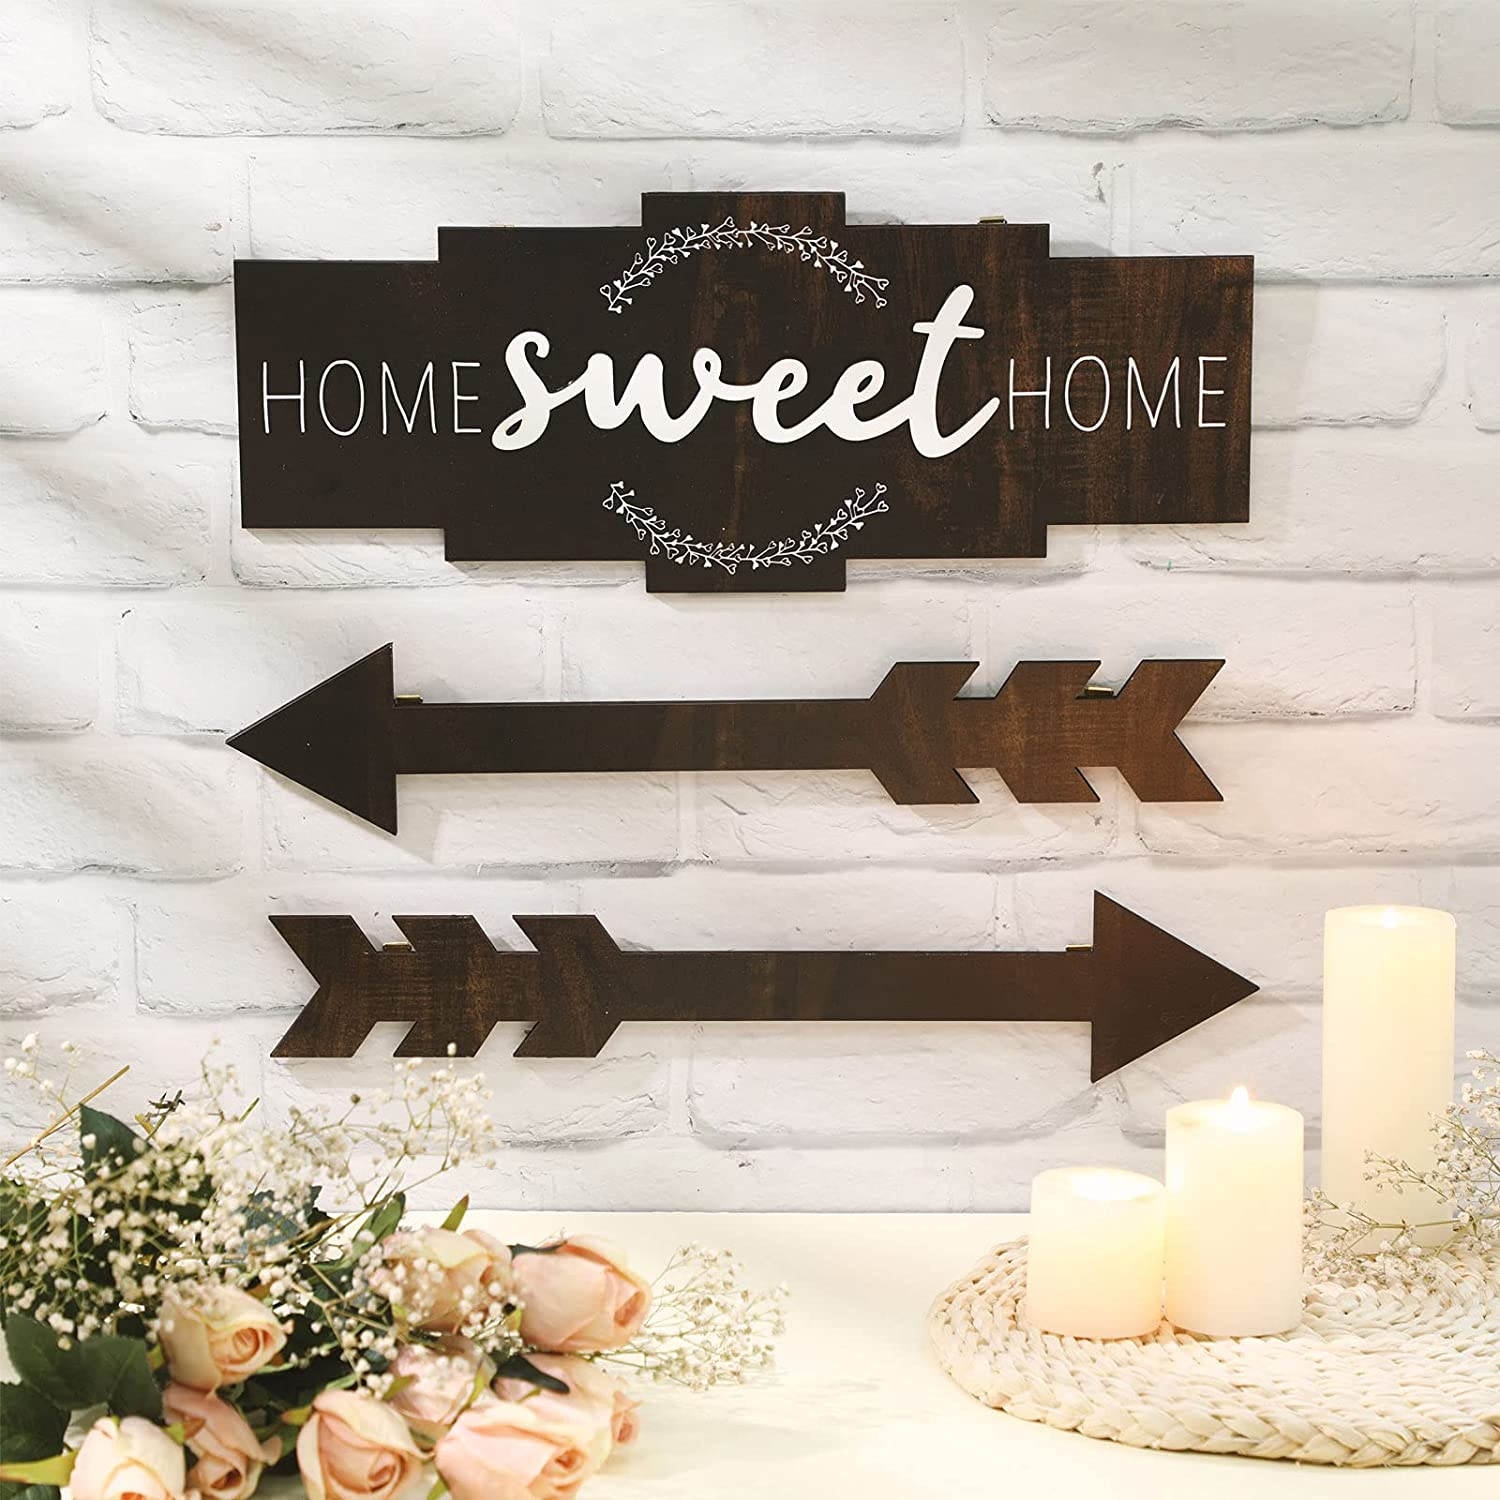 Set of Home Sweet Home Arrow Sign, Rustic Wood Home Wall Decor, Large Farmhouse Arrow Sign Plaque Wall Hanging for Bedroom, Living Room, Party, Wedding Decor (Vintage Color)